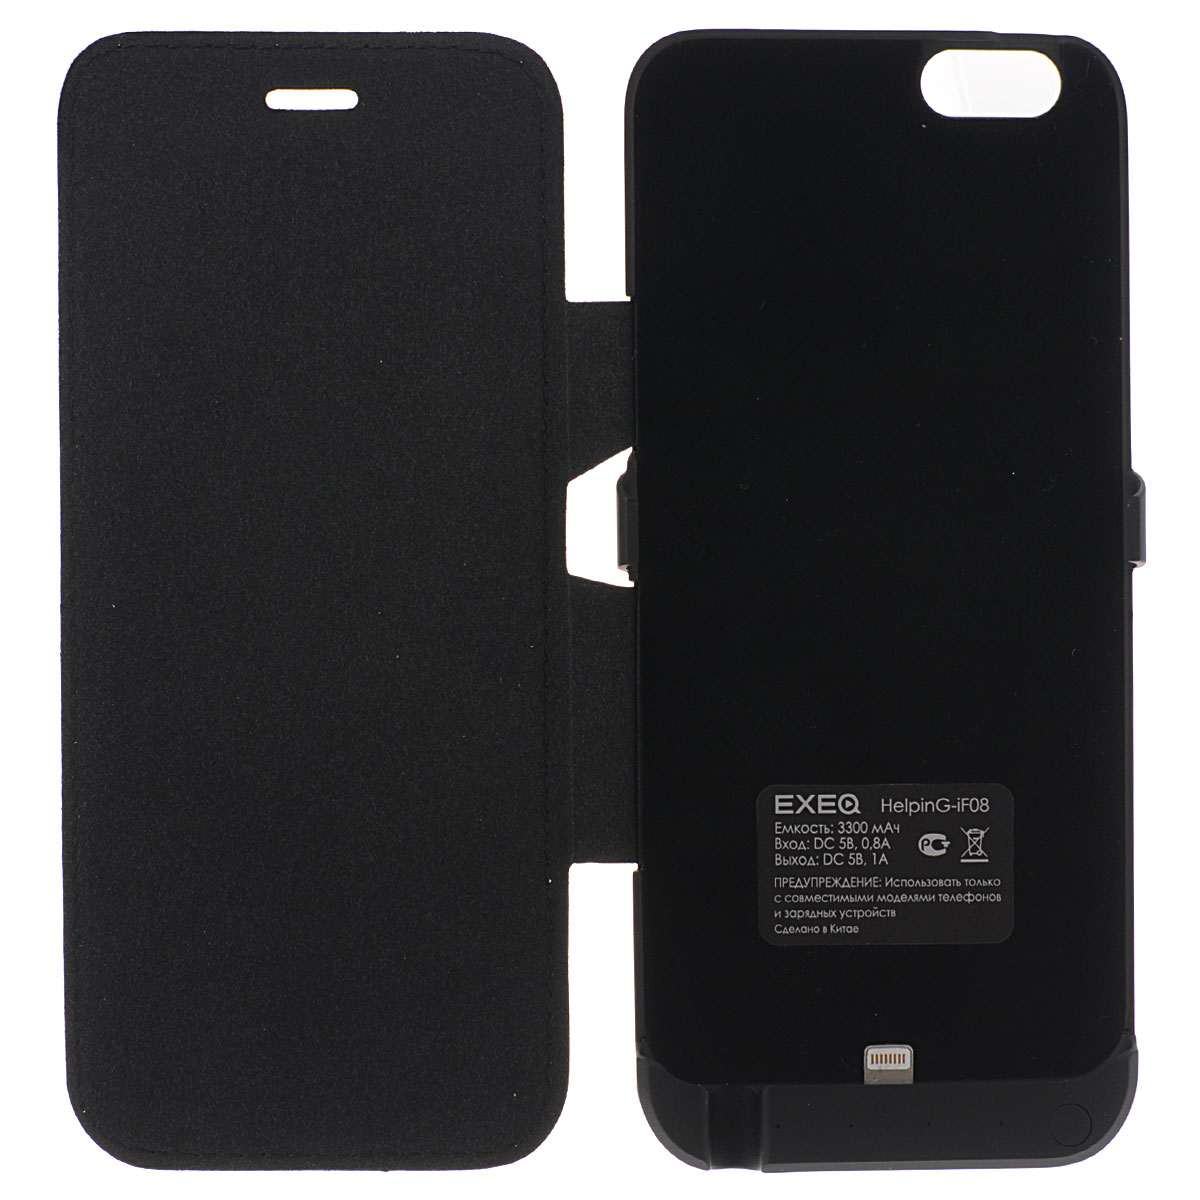 EXEQ HelpinG-iF08 чехол-аккумулятор для iPhone 6, Black (3300 мАч, флип-кейс)HelpinG-iF08 BL